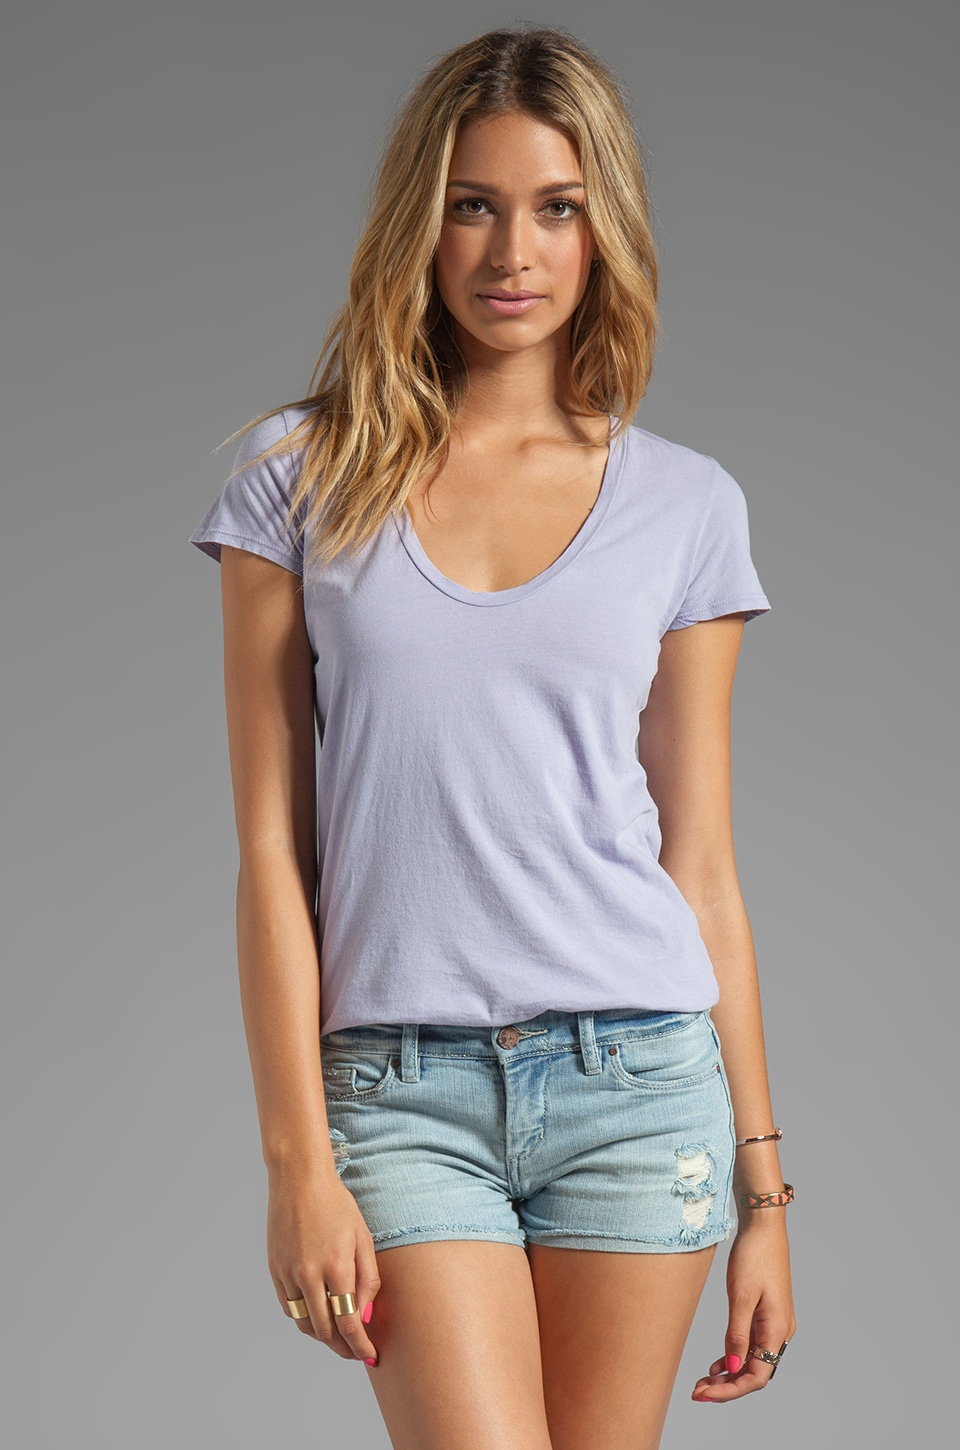 James Perse Relaxed Casual Tee in Parfait